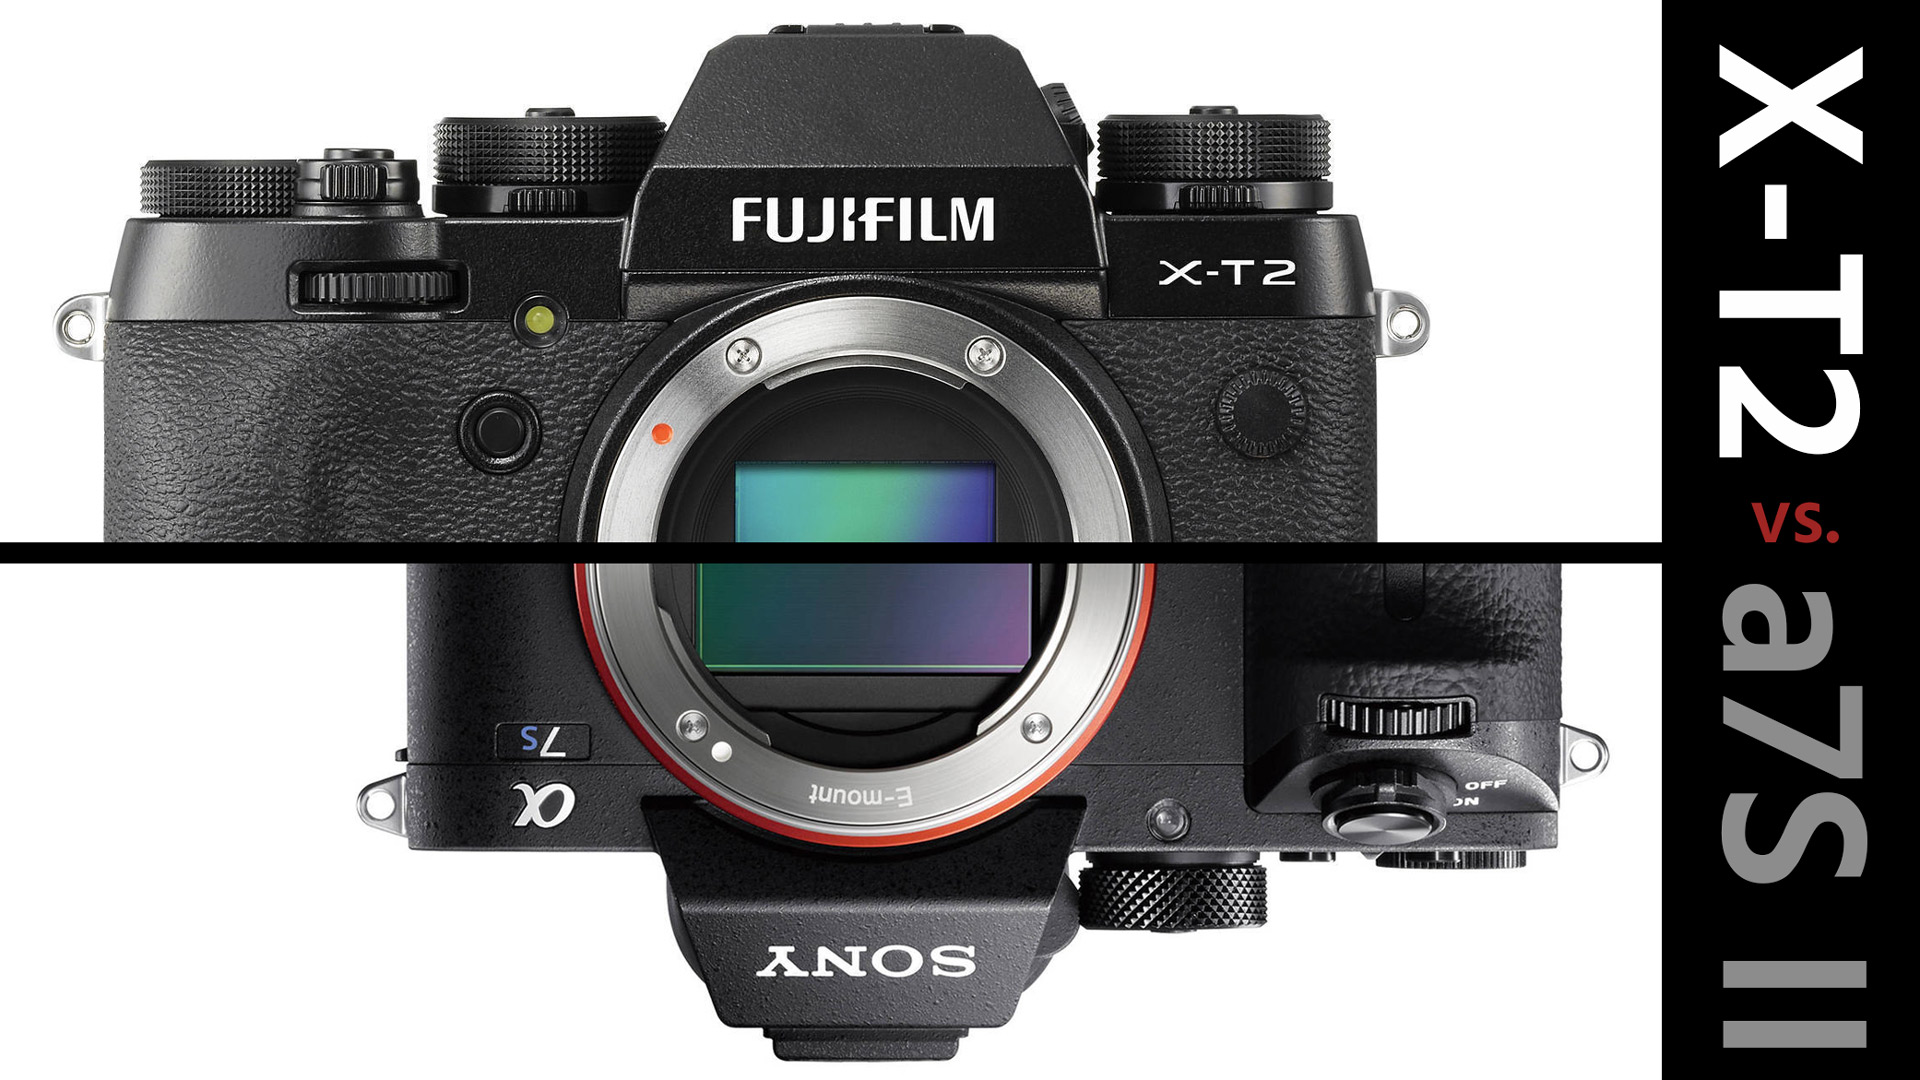 Fujifilm X-T2 vs  Sony a7S II - Which One is the Best